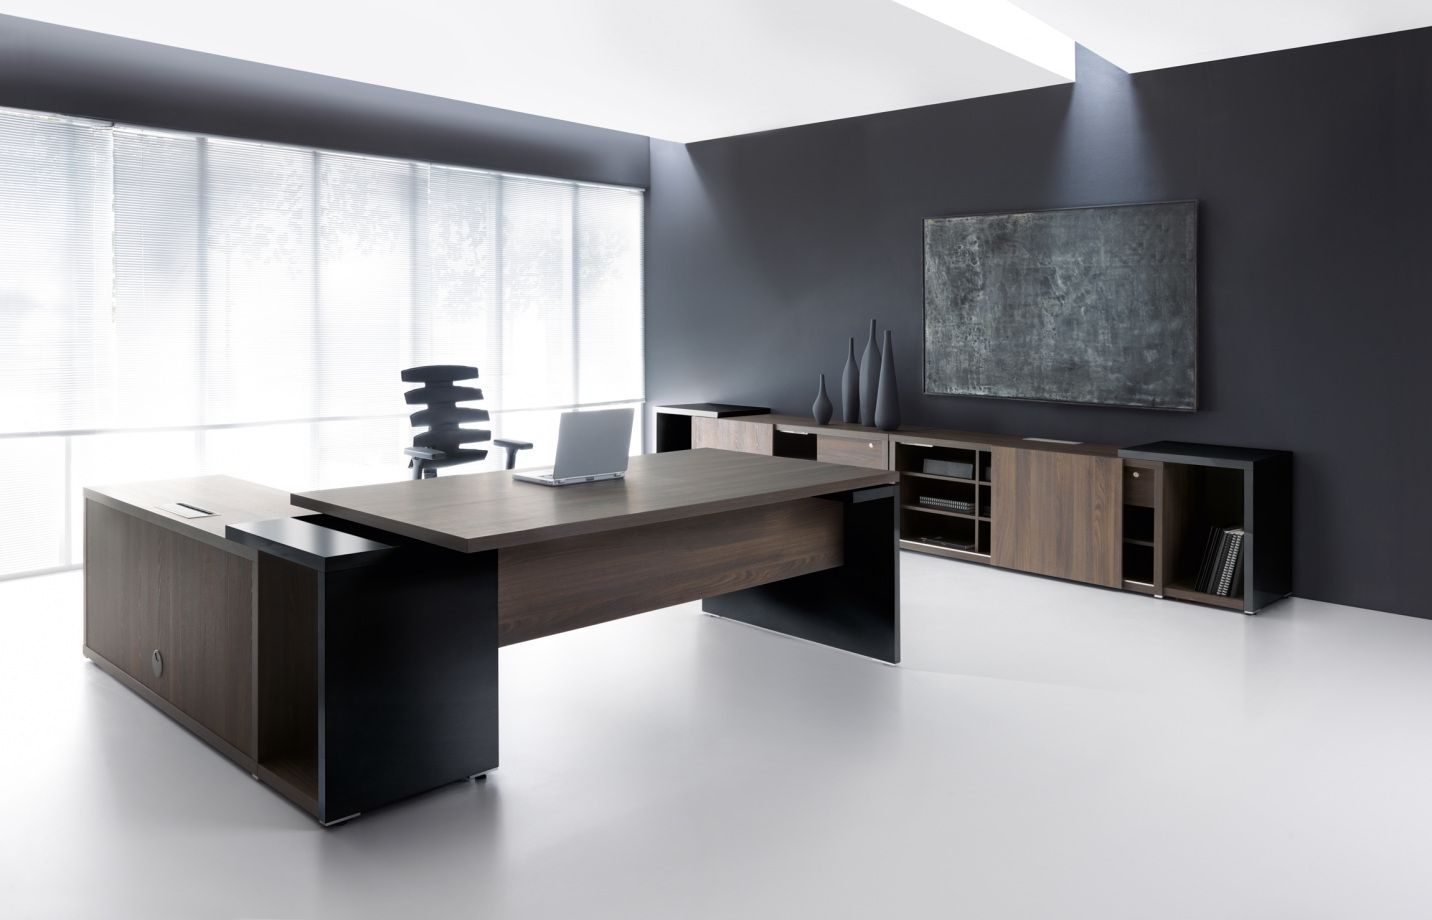 office desk contemporary. Modern Executive Desk - Home Office Furniture Check More At Http://michael-malarkey.com/modern-executive-desk/ Contemporary O